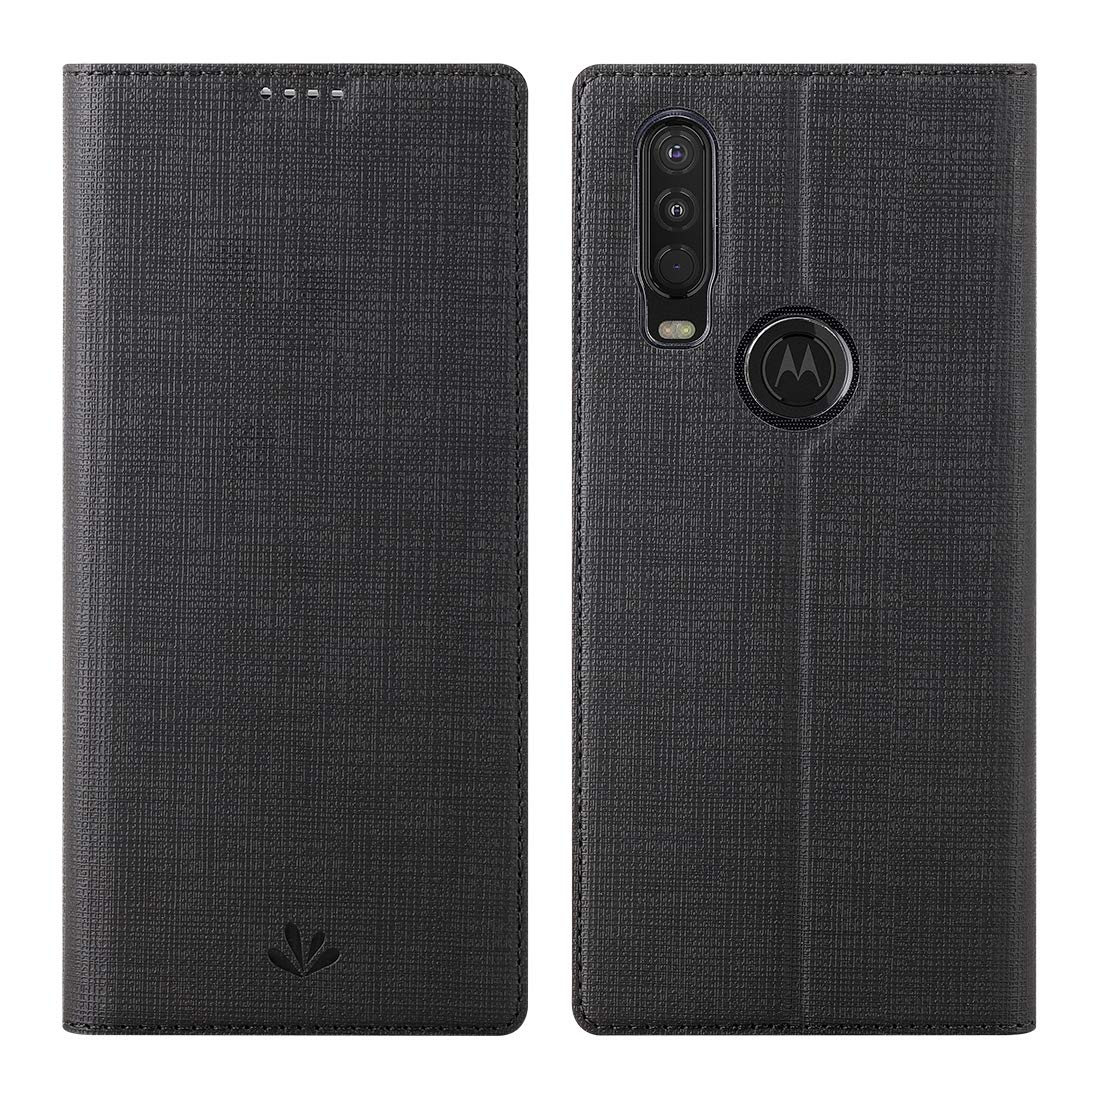 Funda Premium Flip Cover Para Motorola One Action, Negra